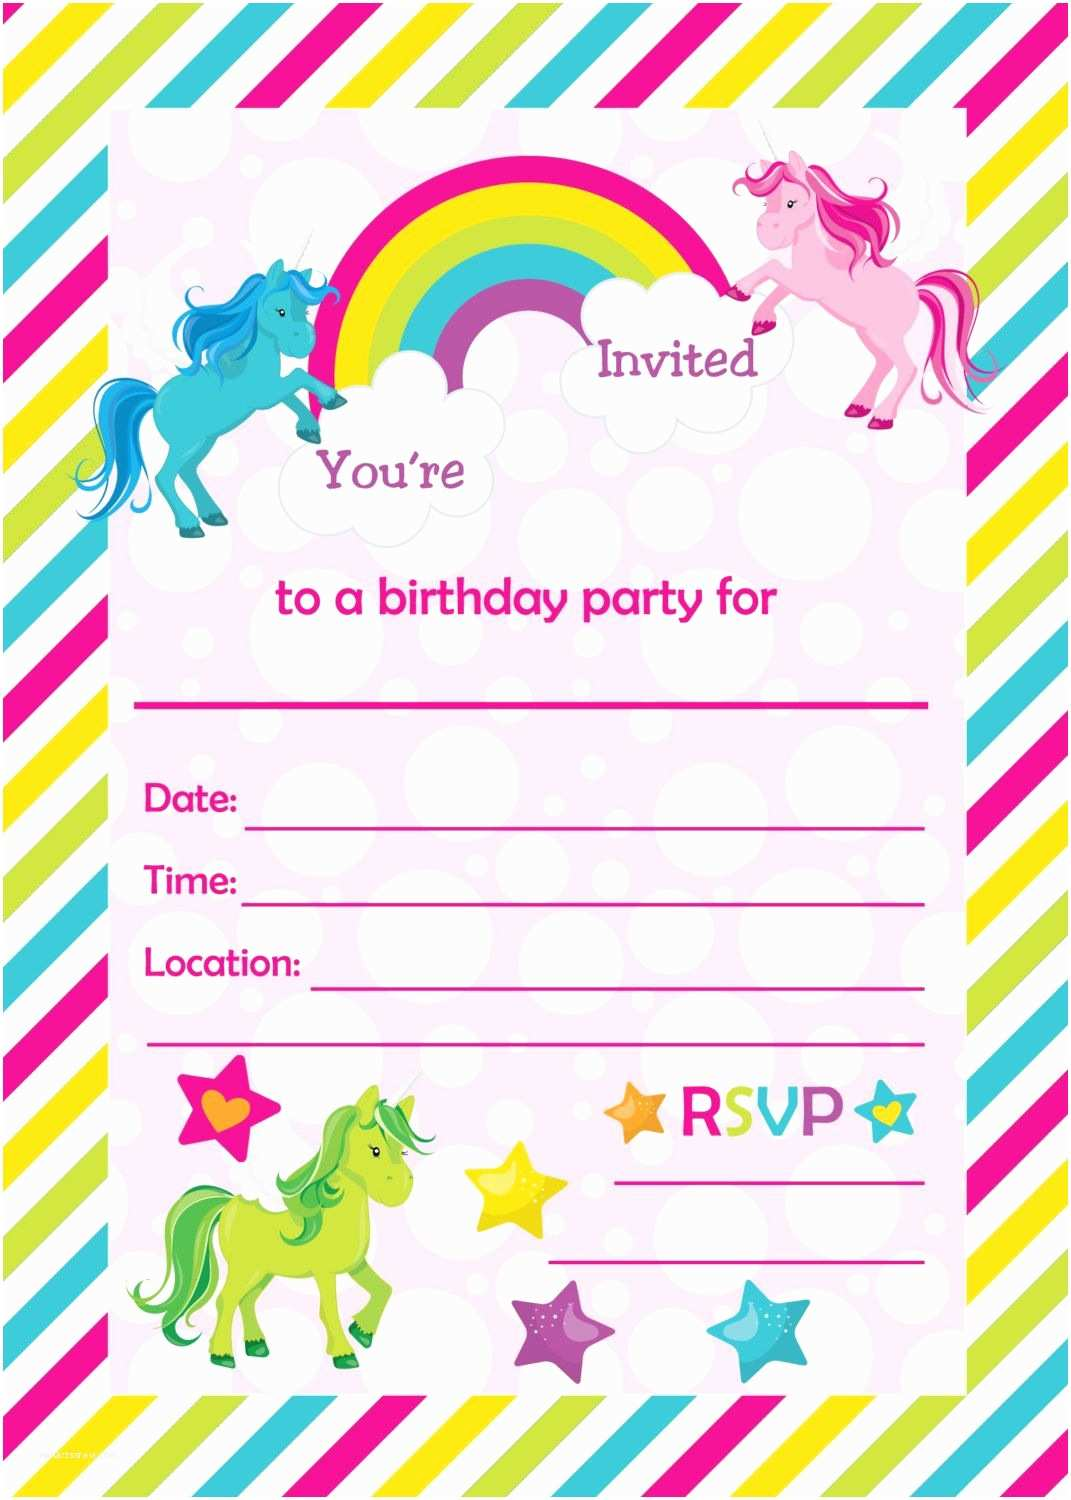 Unicorn Party Invitations Fill In Birthday Party Invitations Printable Rainbows and